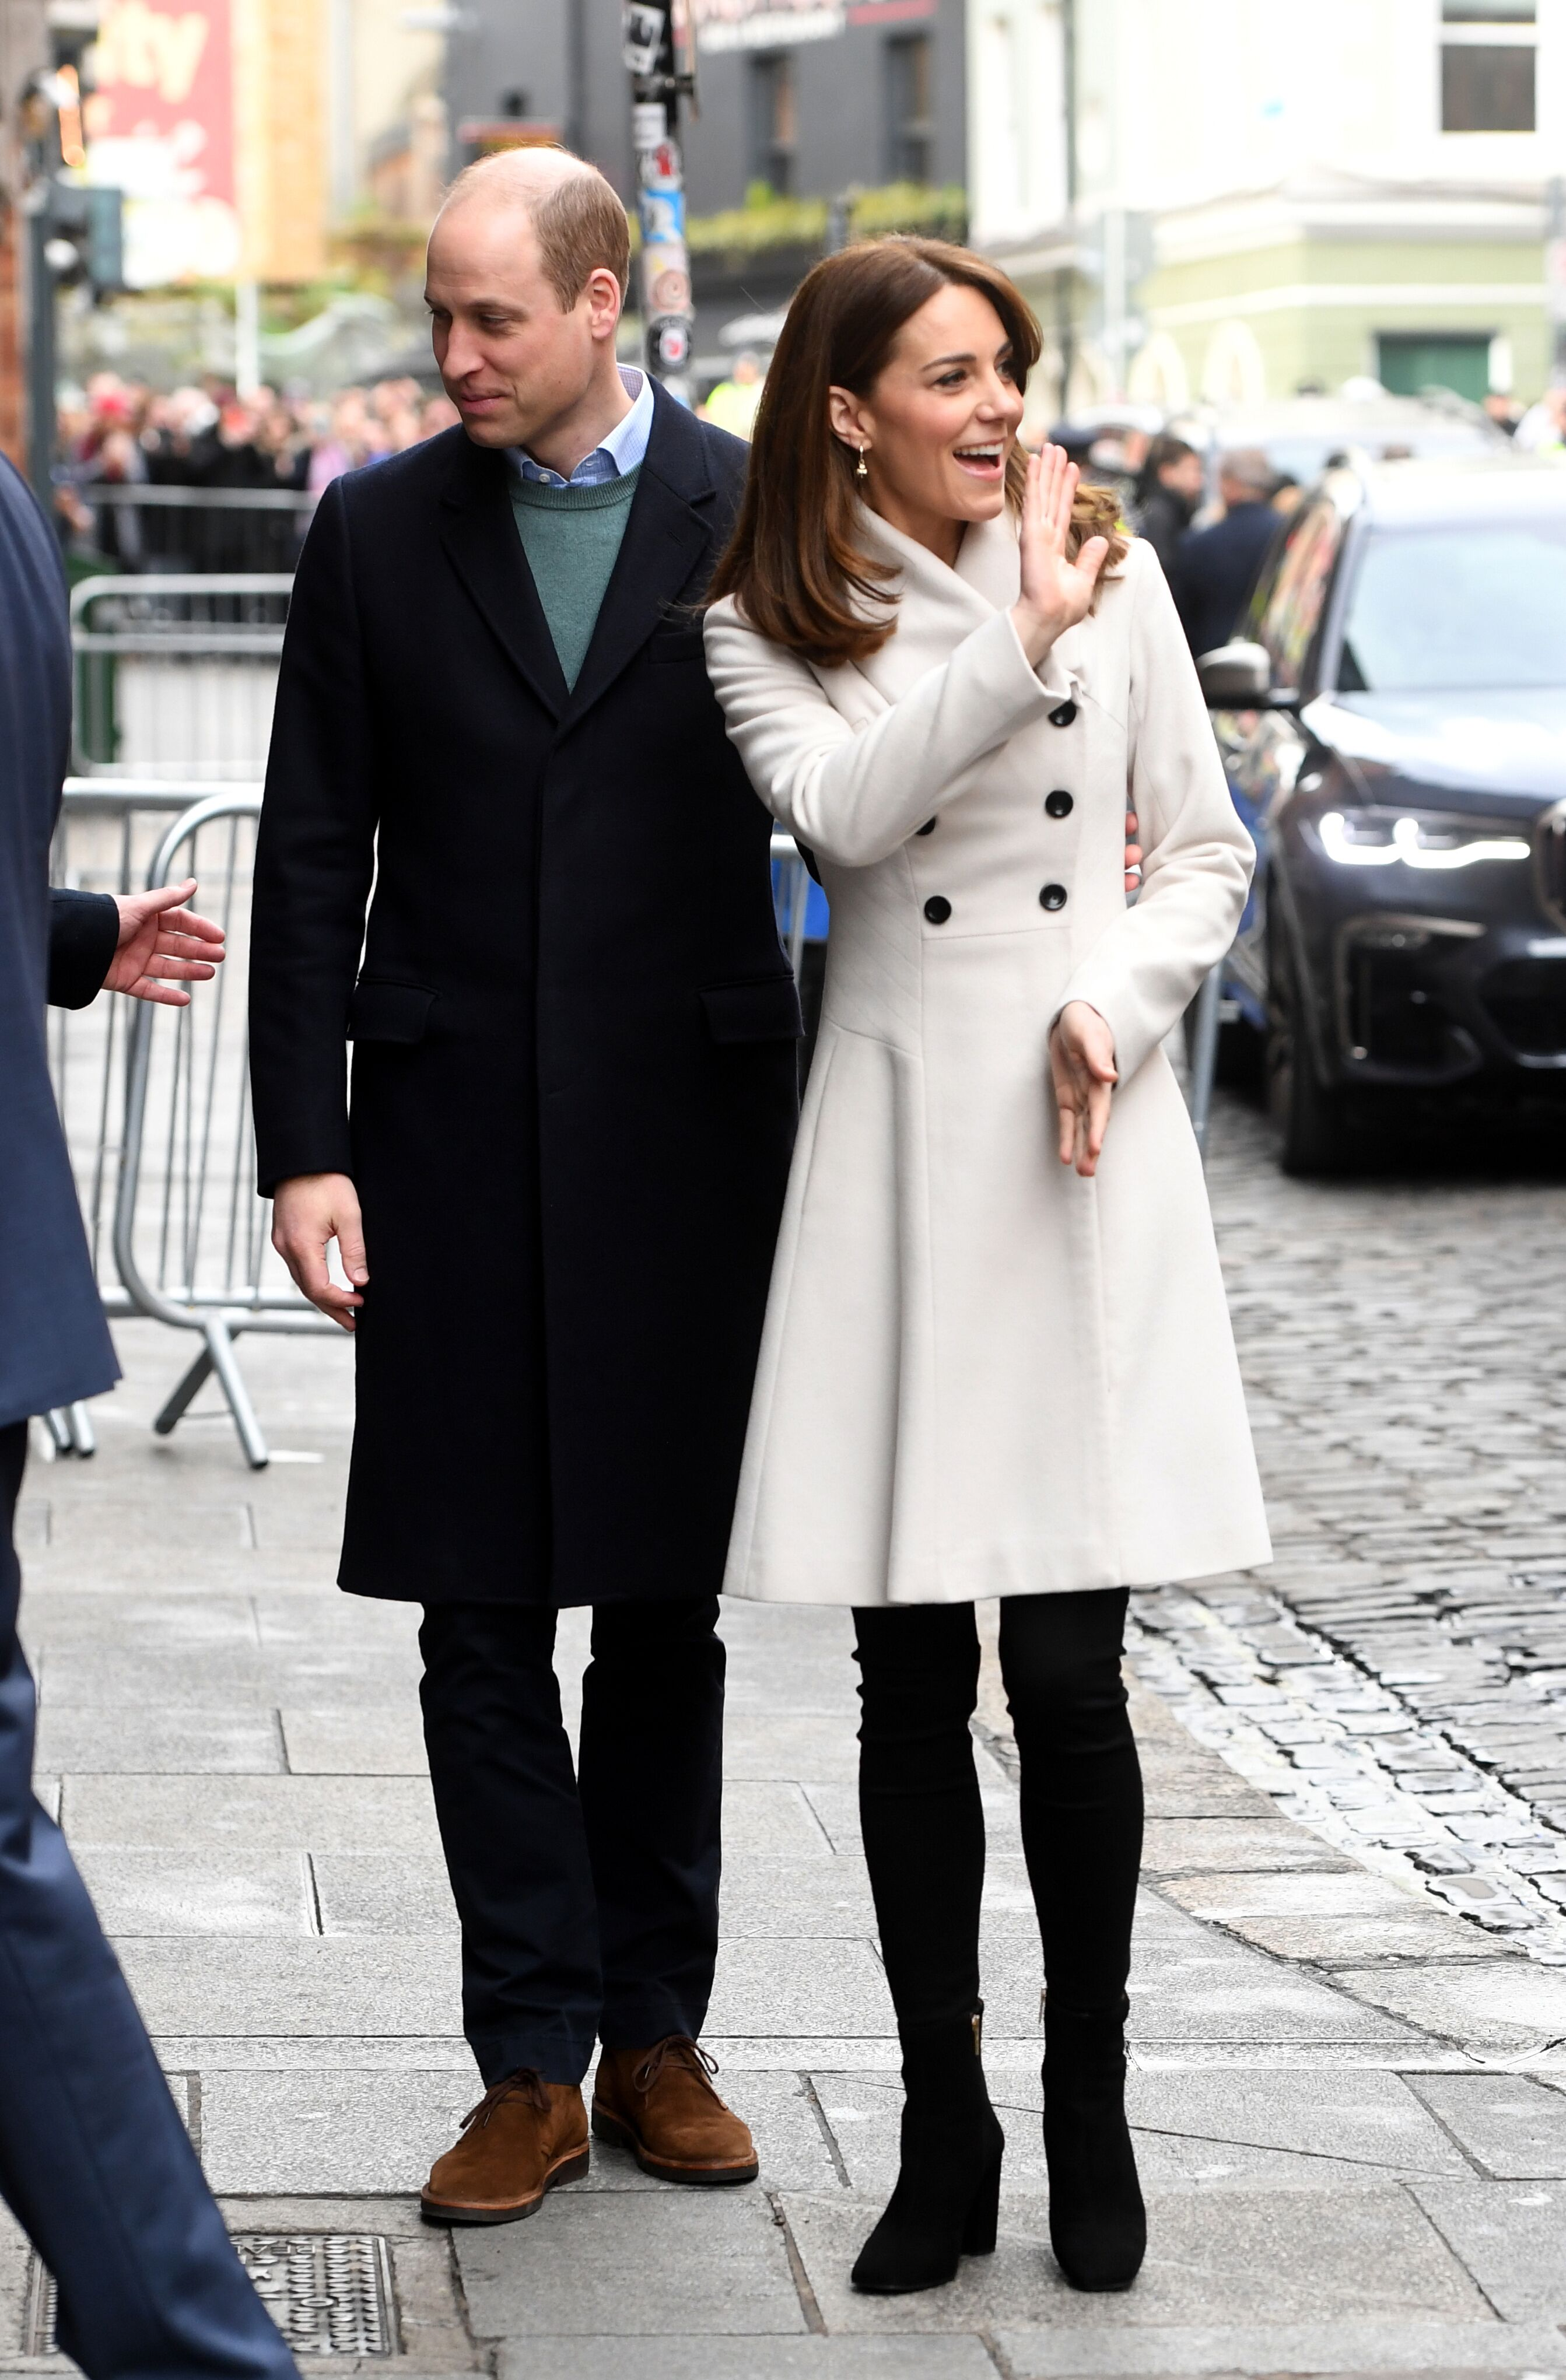 Prince William and Duchess Kate Middleton visit Jigsaw on March 04, 2020, in Dublin, Ireland | Photo: Photo: Getty Images